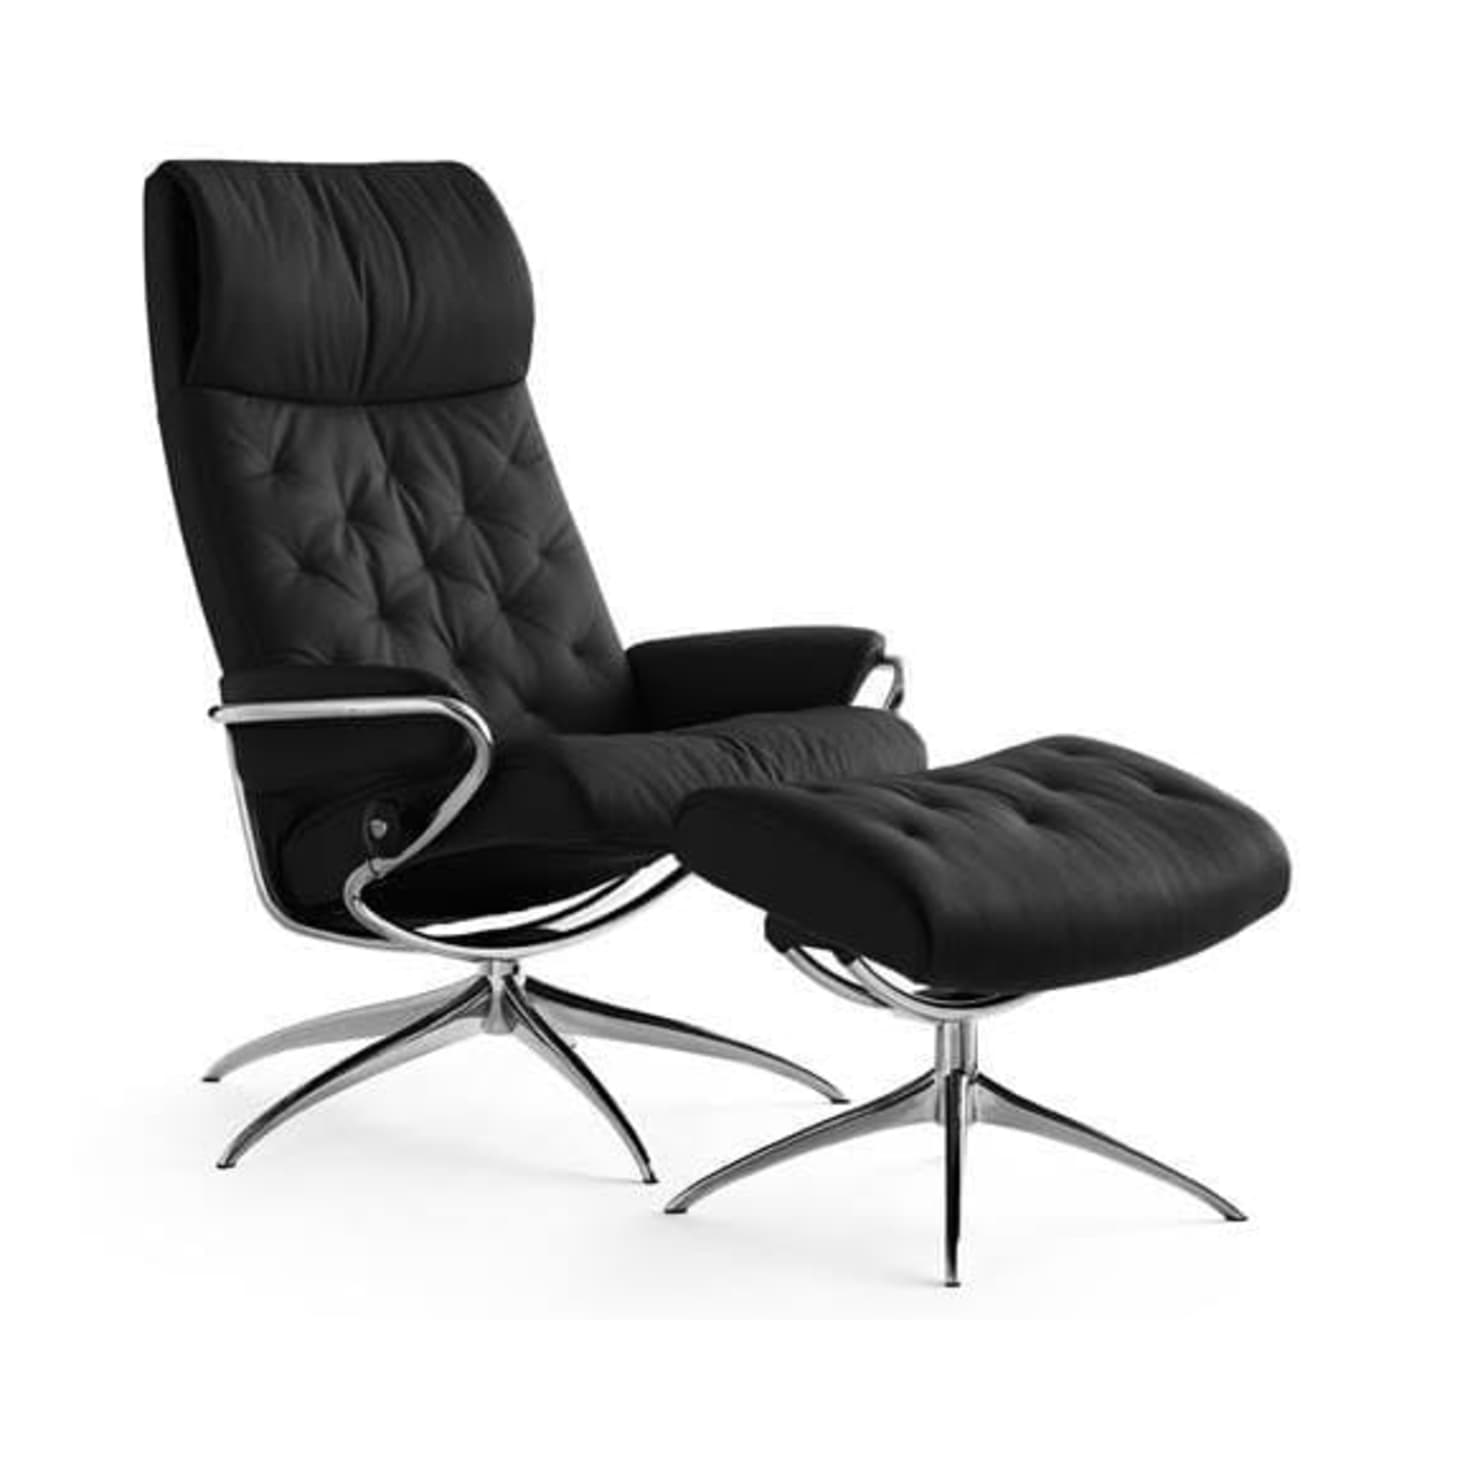 Tremendous Attractive Modern Recliner Chairs Apartment Therapy Beatyapartments Chair Design Images Beatyapartmentscom